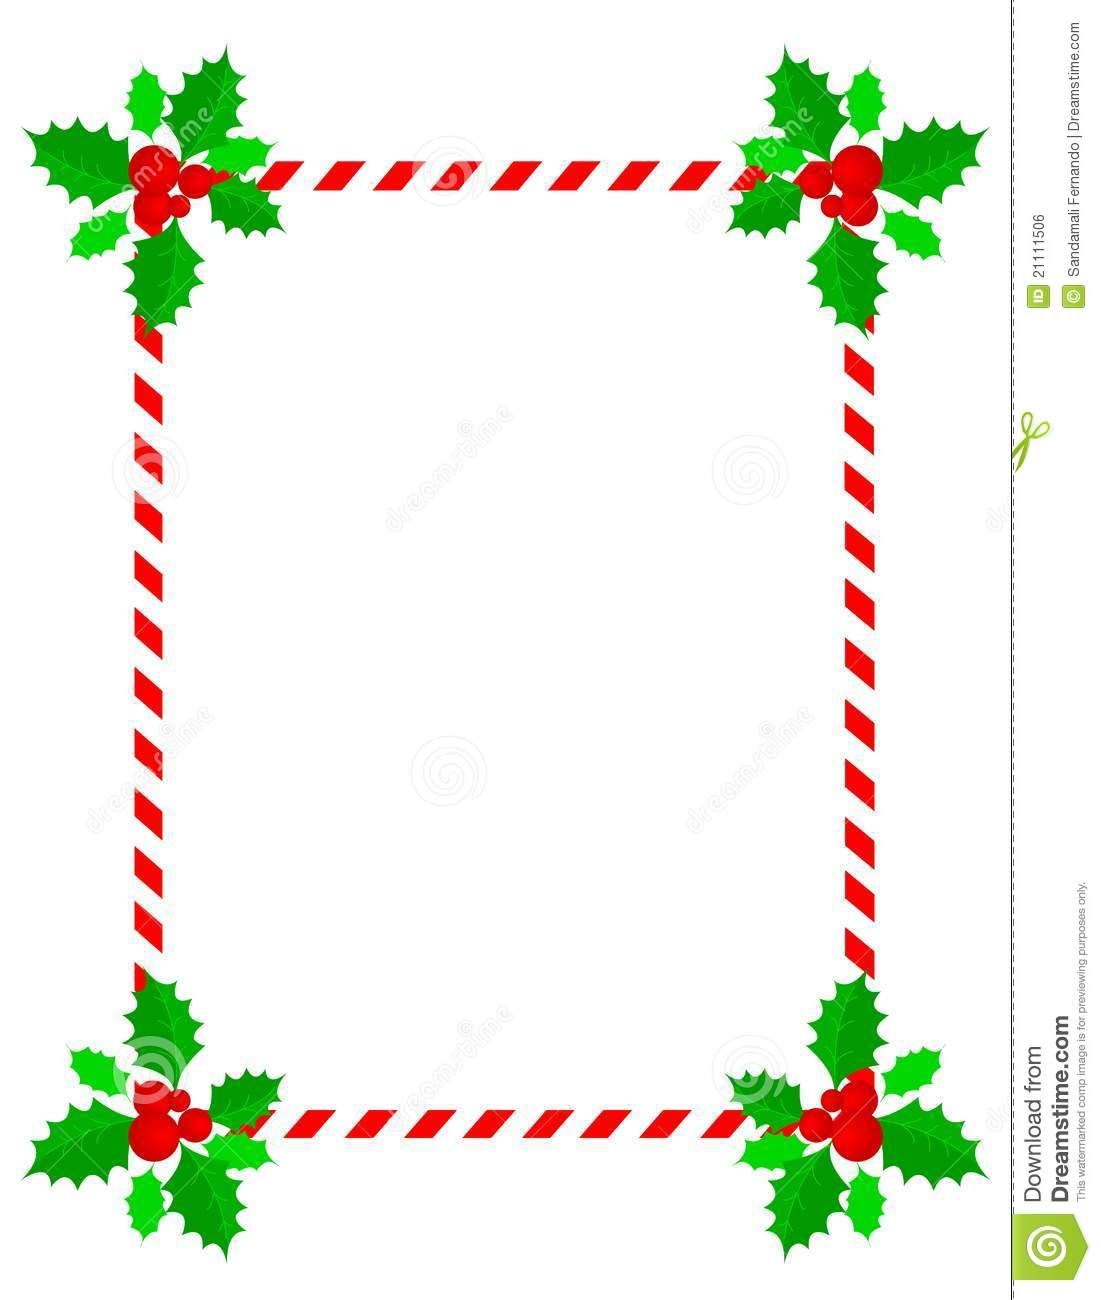 Christmas Frame / Border Royalty Free Stock Image - Image: 21111506